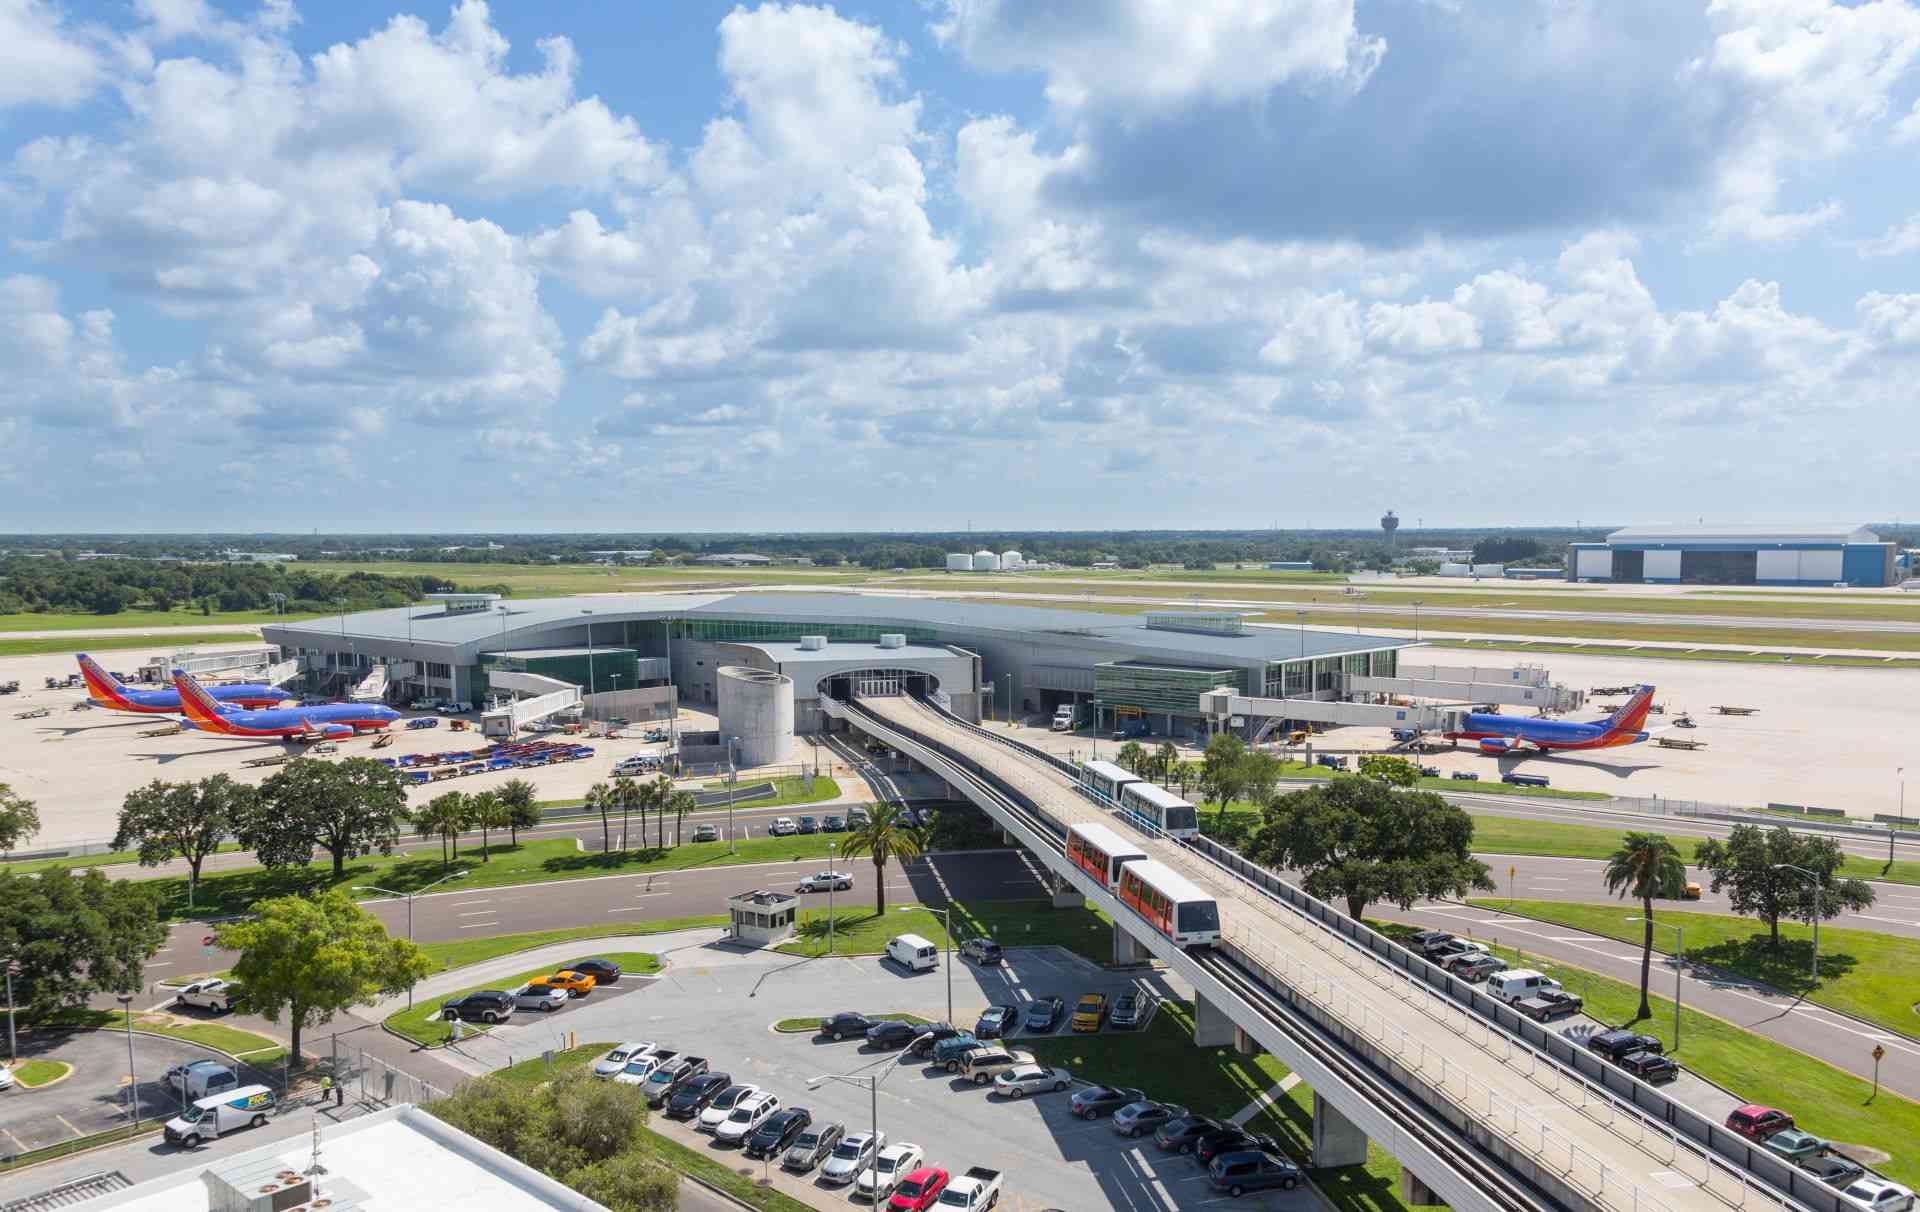 Tampa Flughafen Automated People Mover (APM)